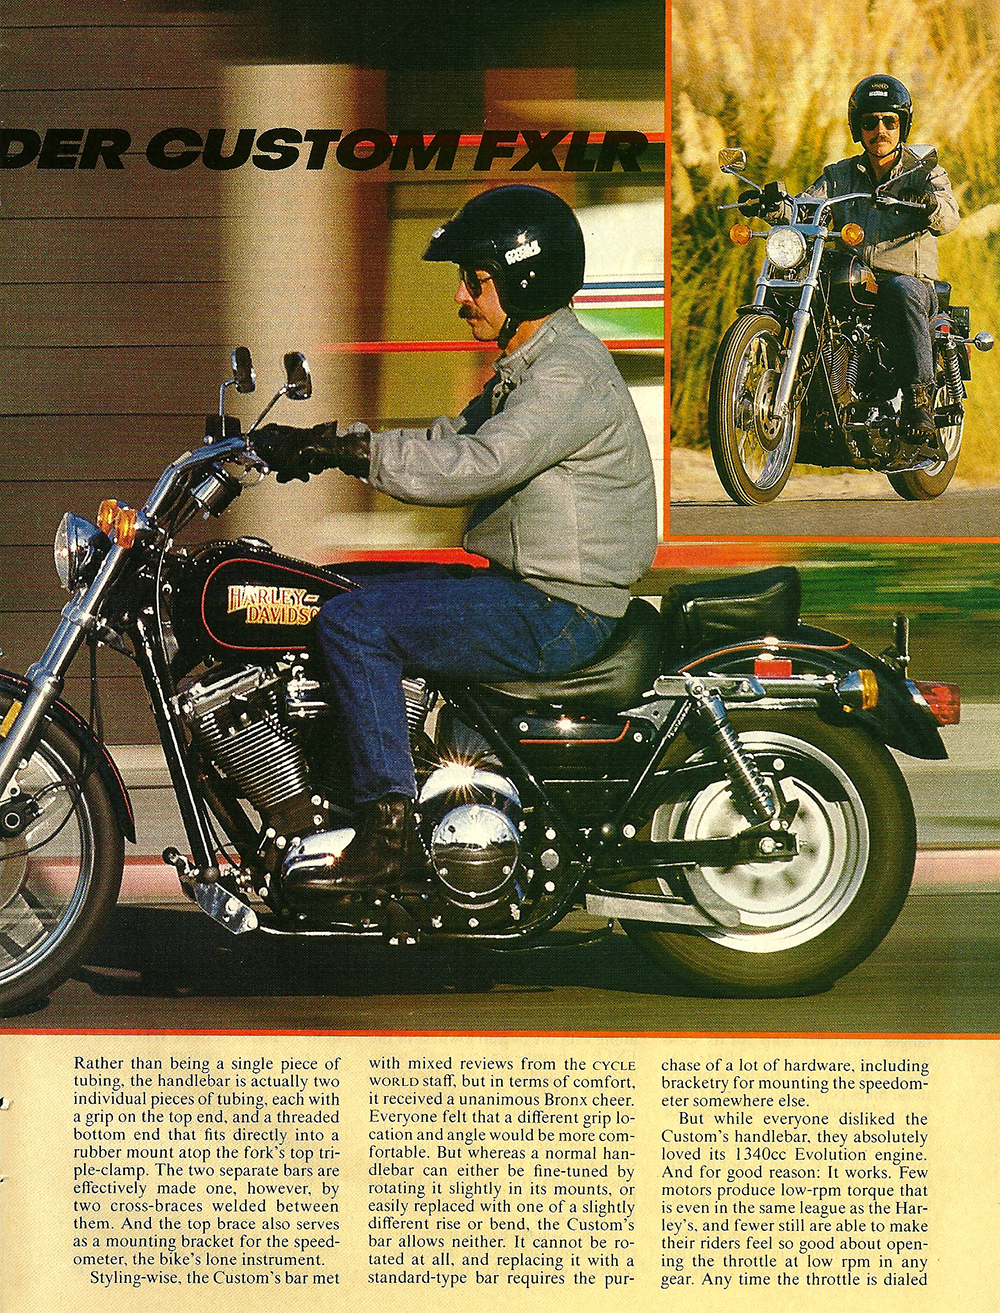 1987 Harley low rider custom fxlr road test 02.jpg